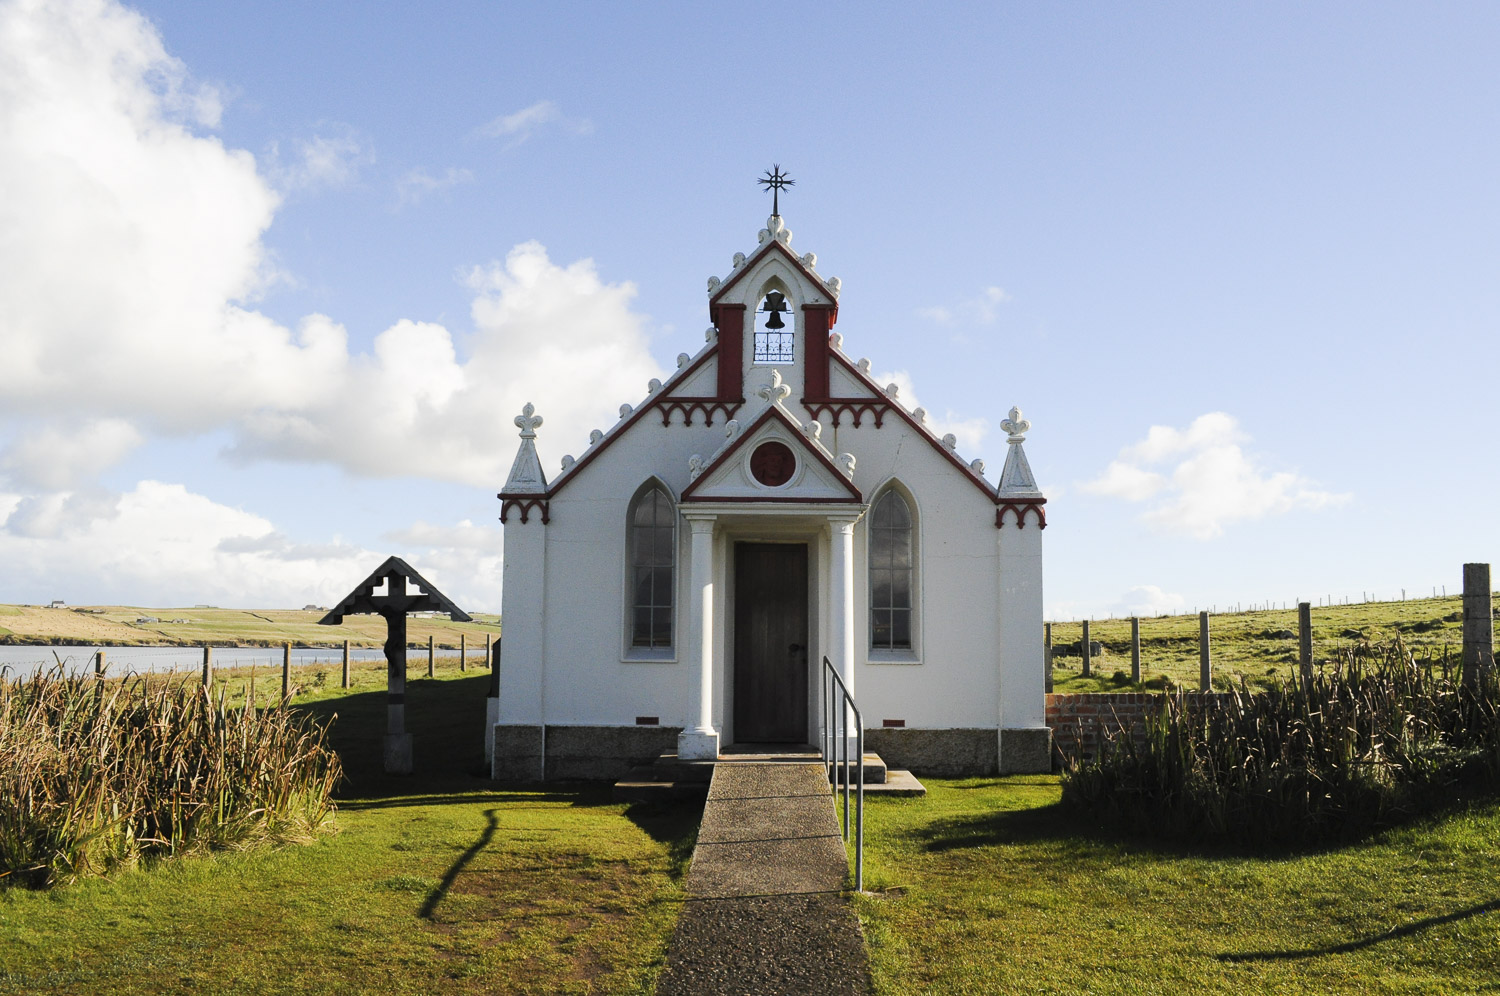 Italian Chapel, built from a Nissen hut